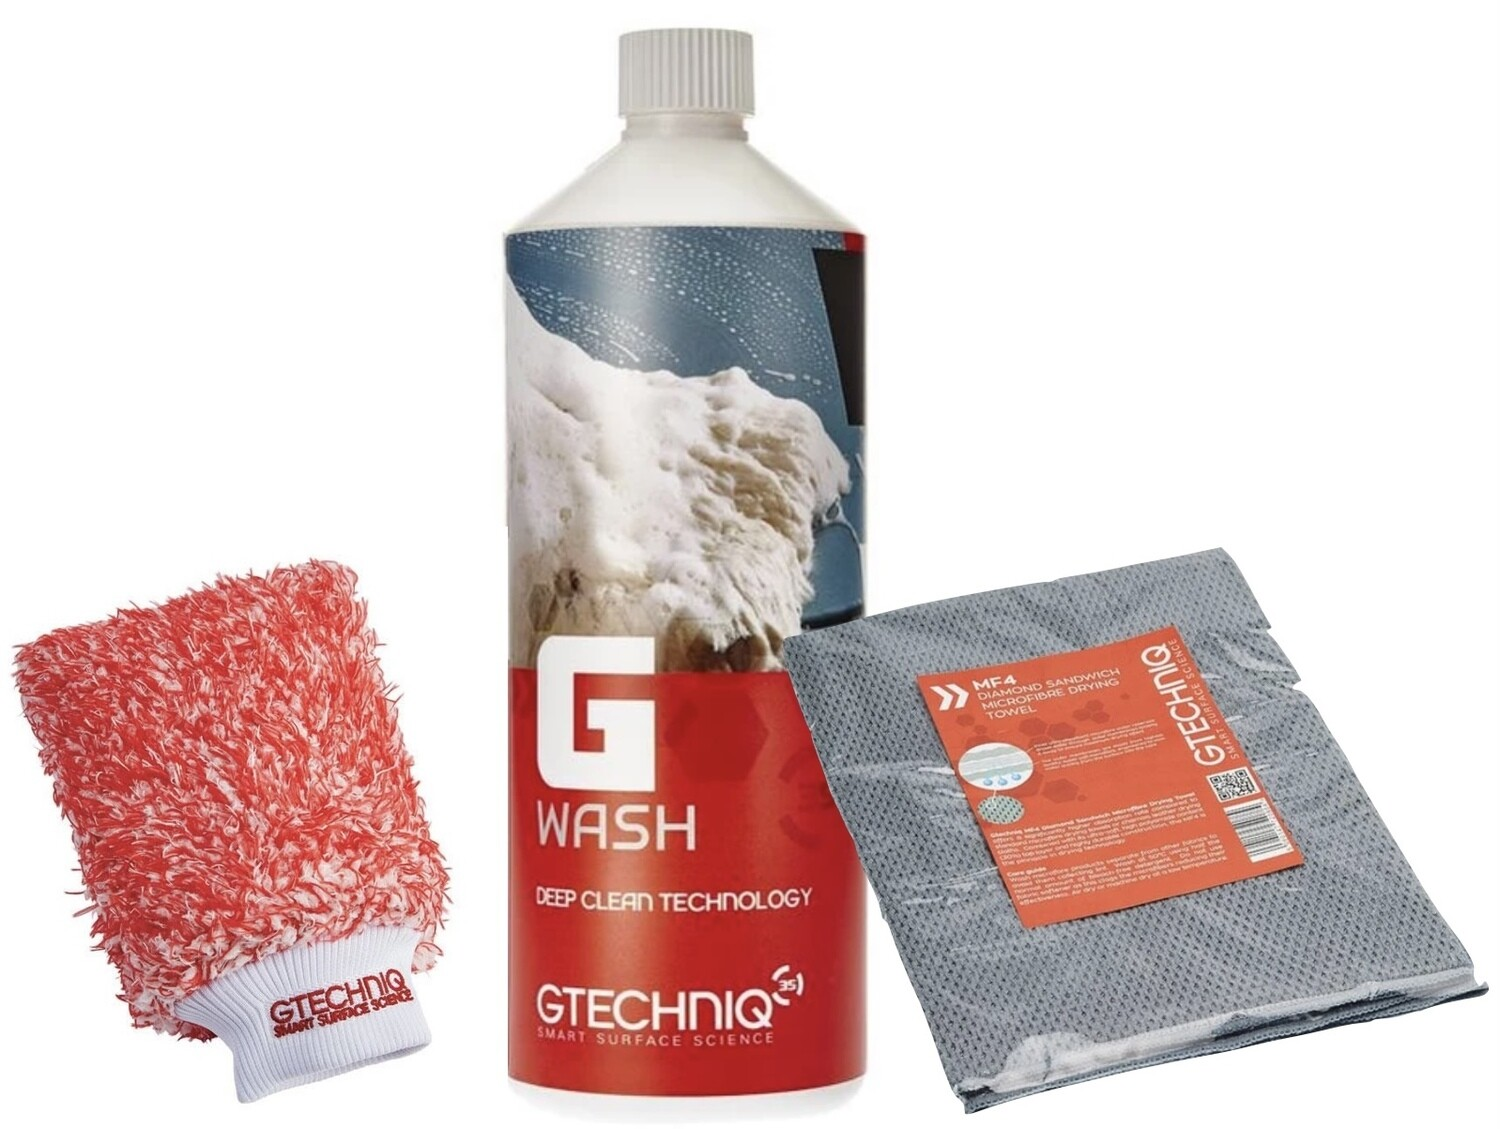 Gtechniq Wash Kit